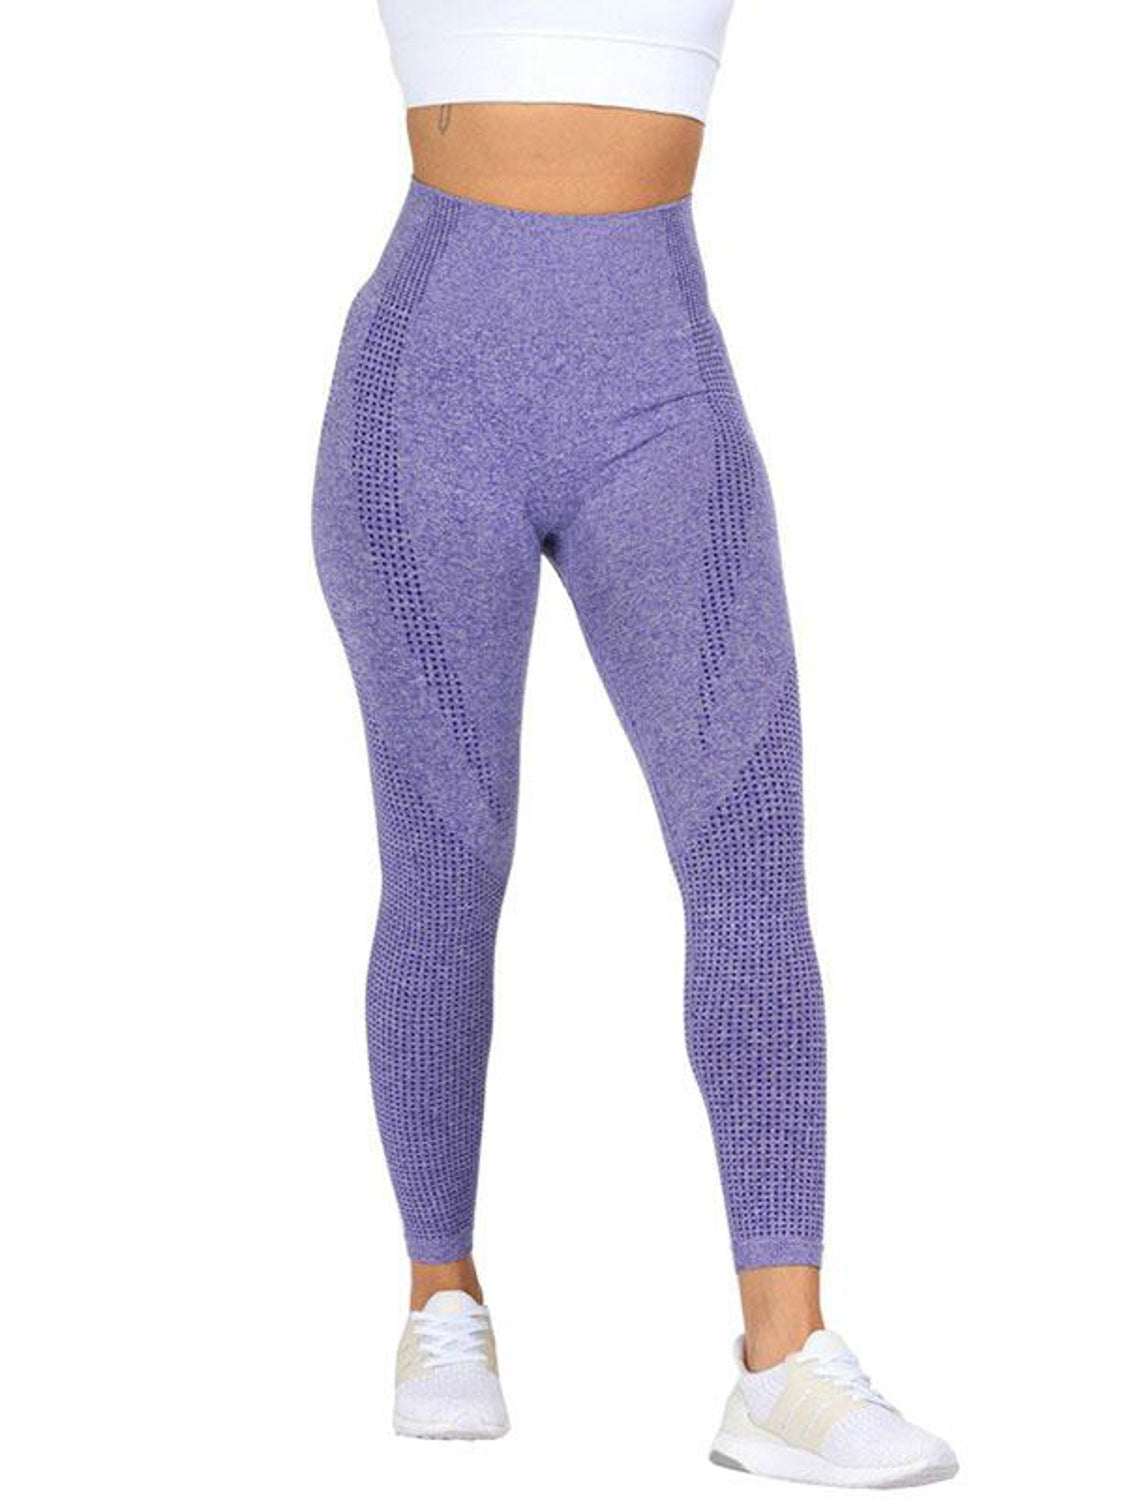 MOVI Sculpt+ Flex Full Length Leggings - Indigo